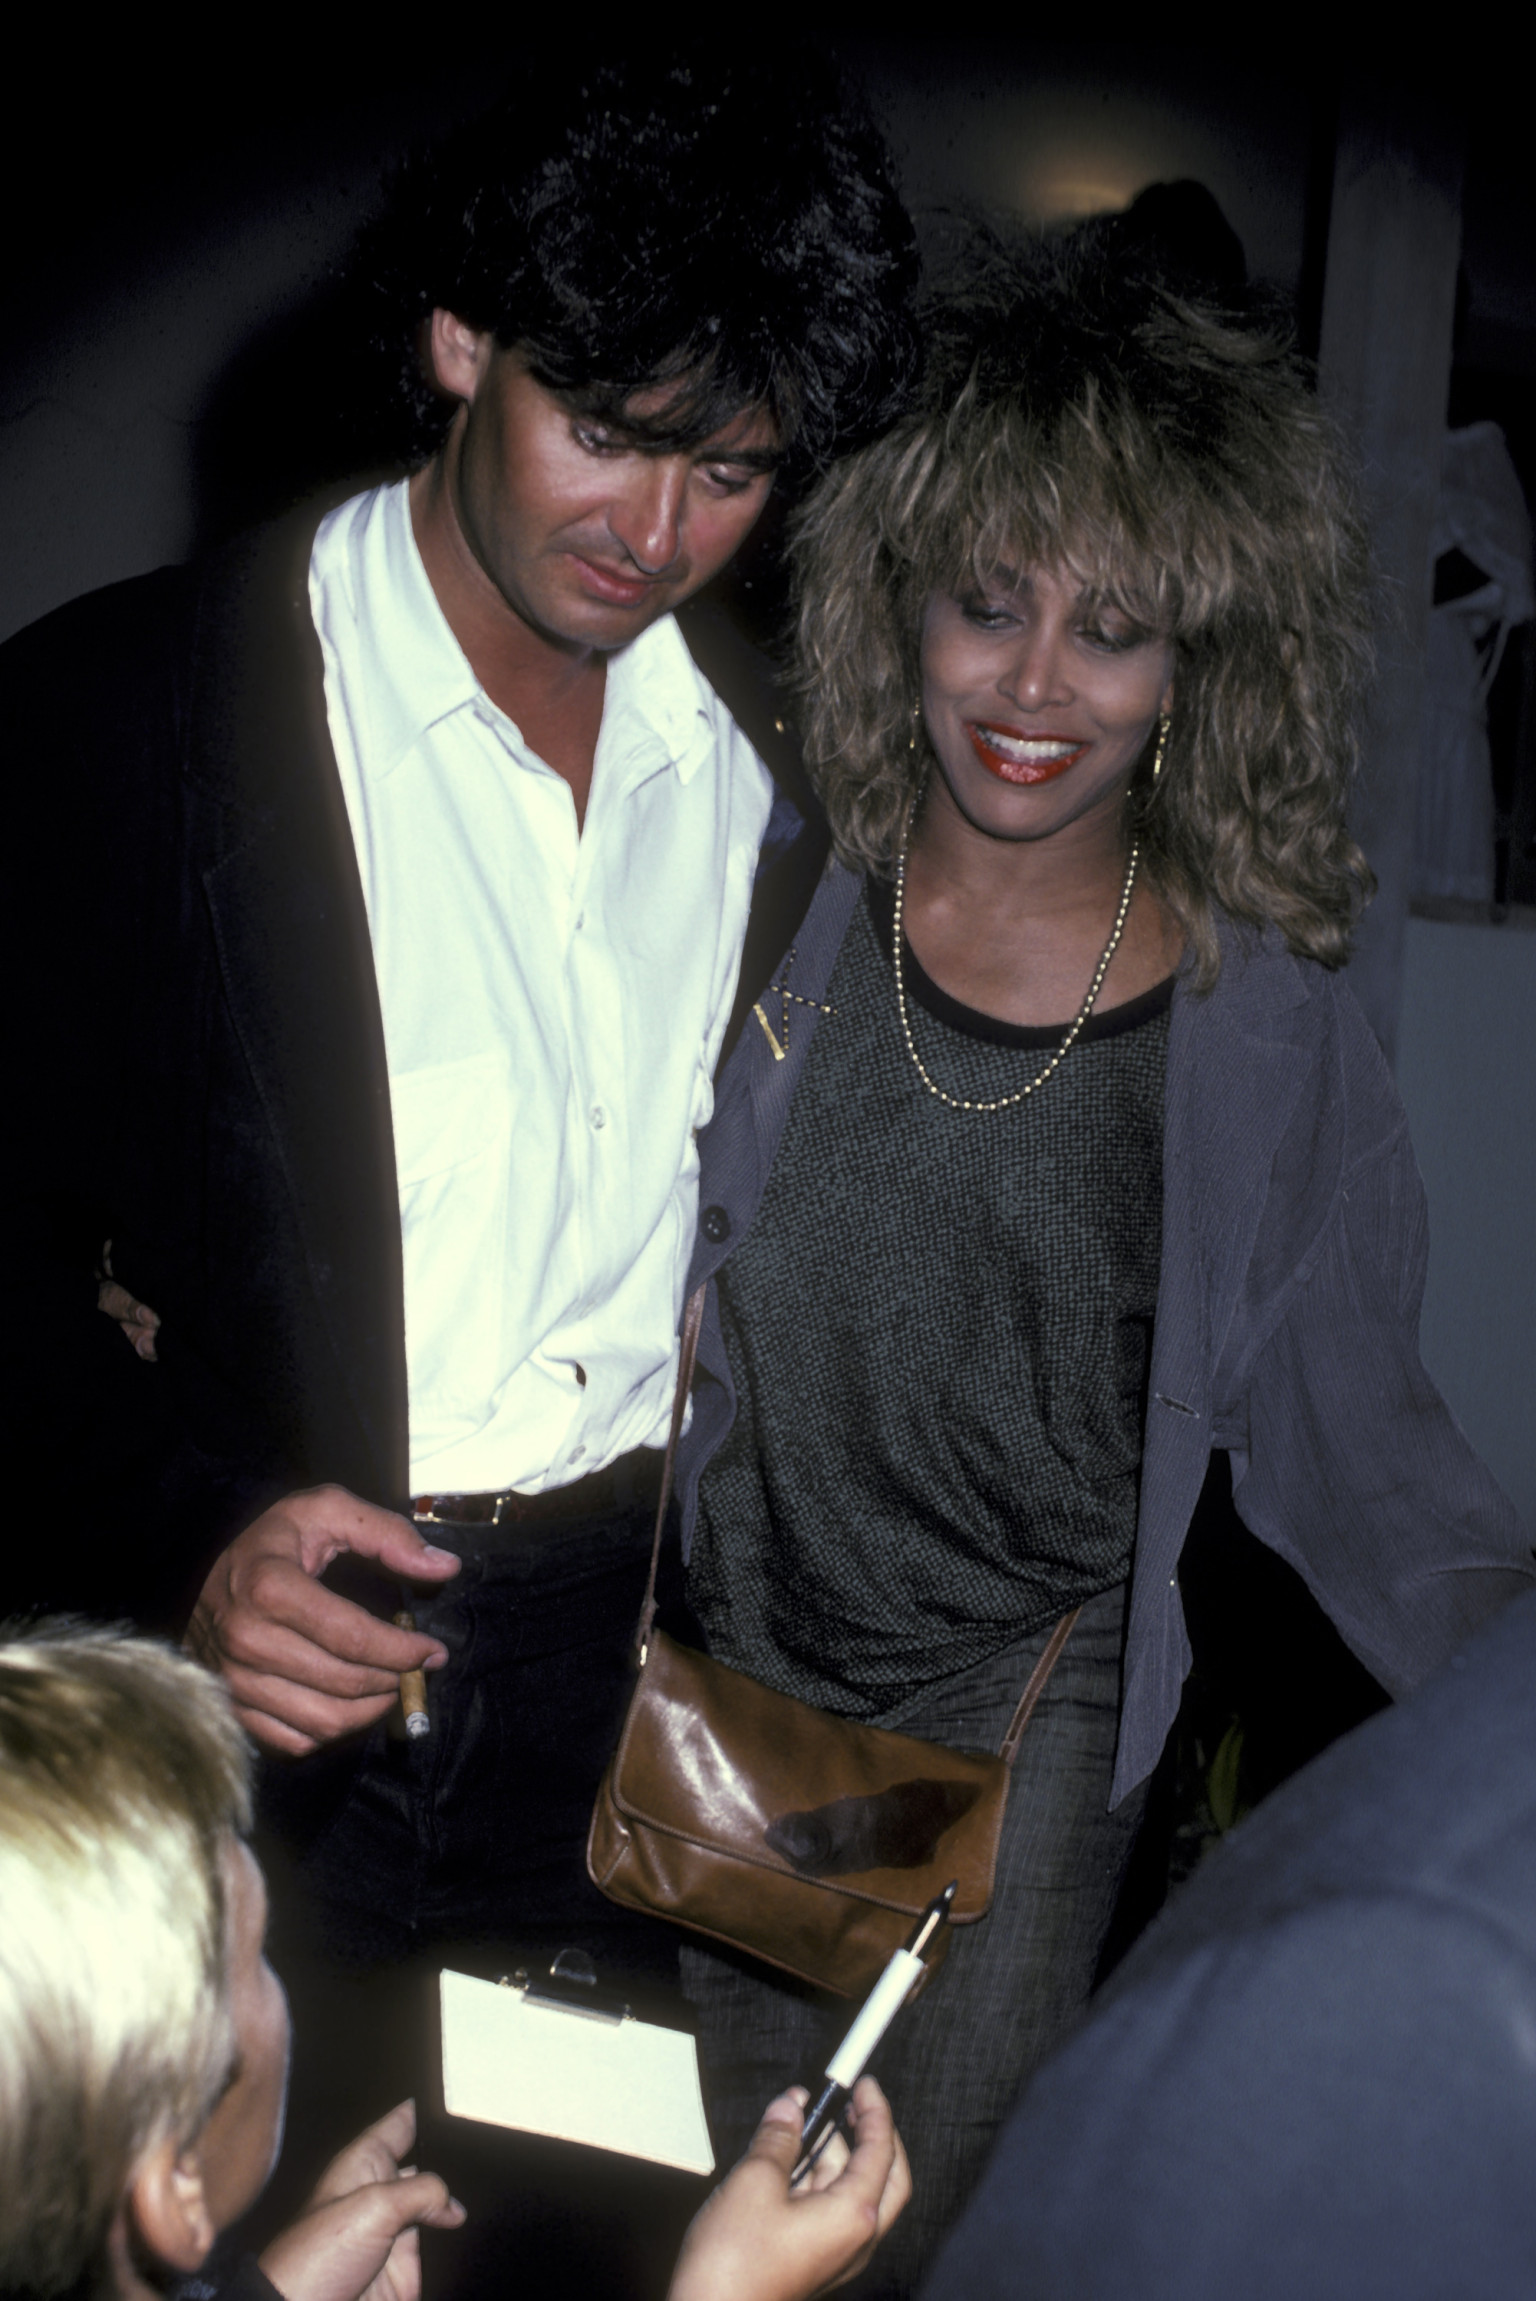 Tina Turner And Erwin Bach Set To Marry After 25 Years (REPORT) | HuffPost